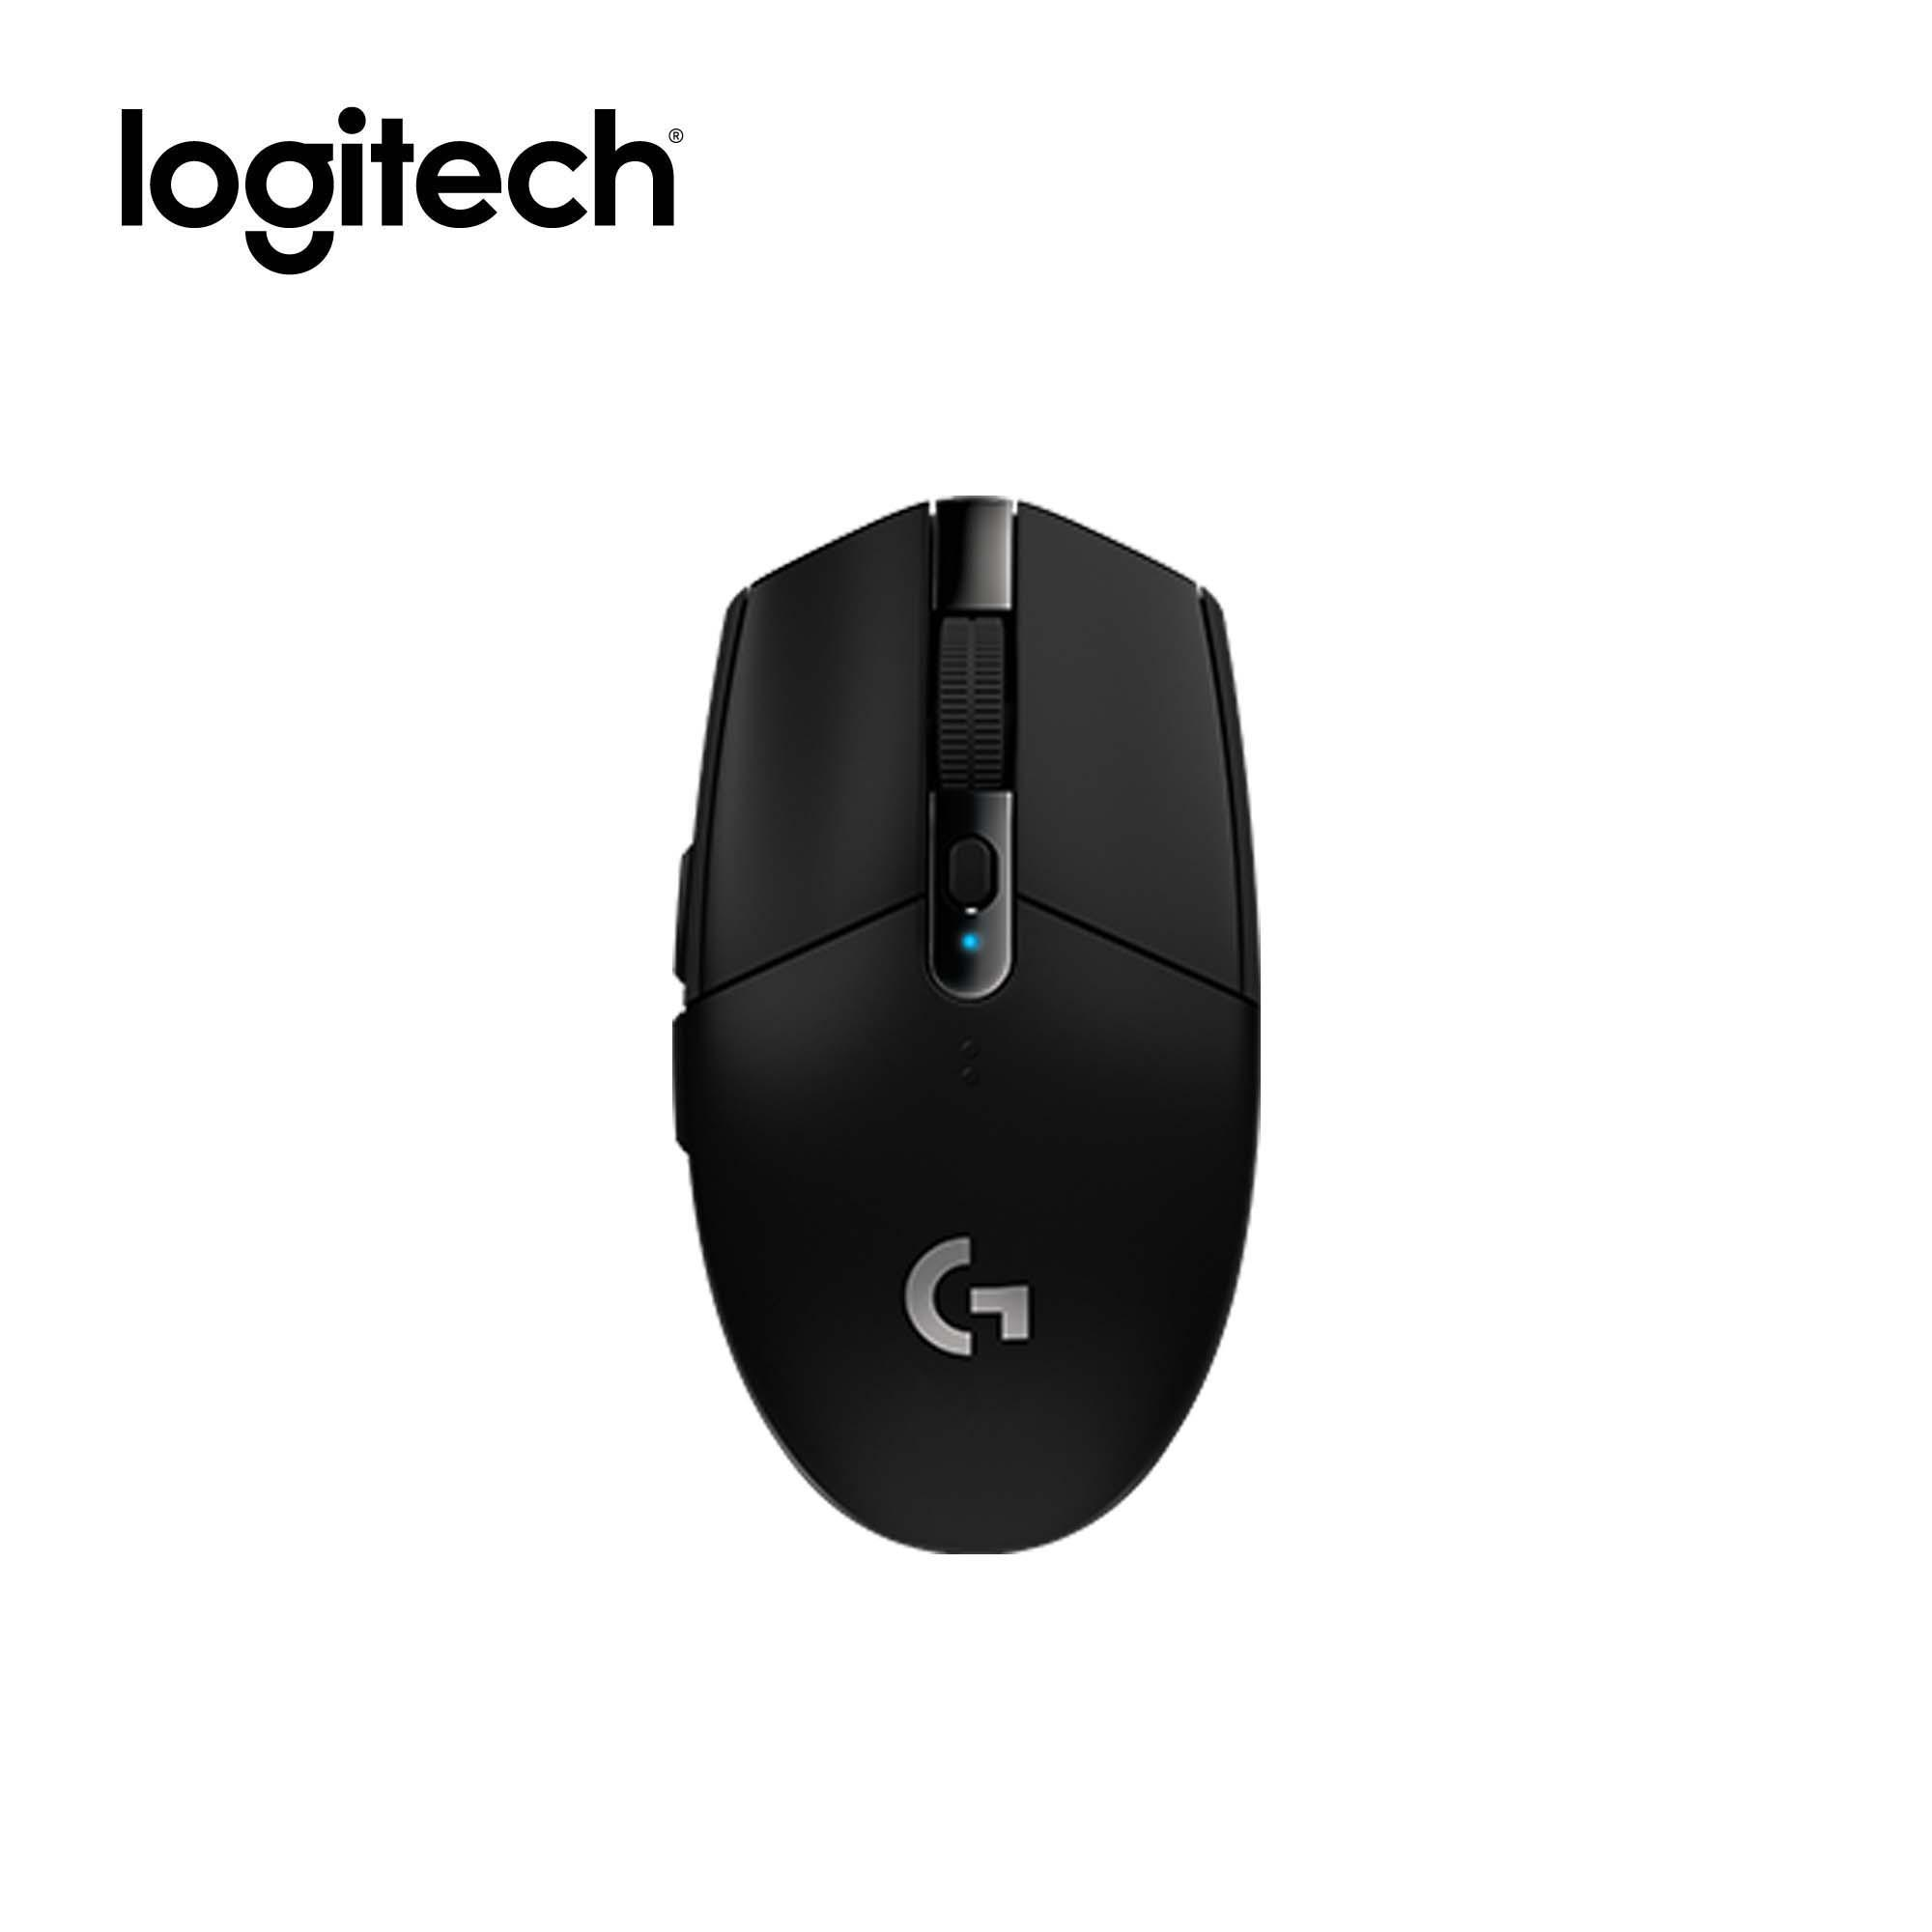 Logitech G304 Next-Generation Lightspeed Wireless Gaming Mouse,Hero Sensor max 12,000 DPI, 6 Buttons, Ultra Lightweight, USB receiver